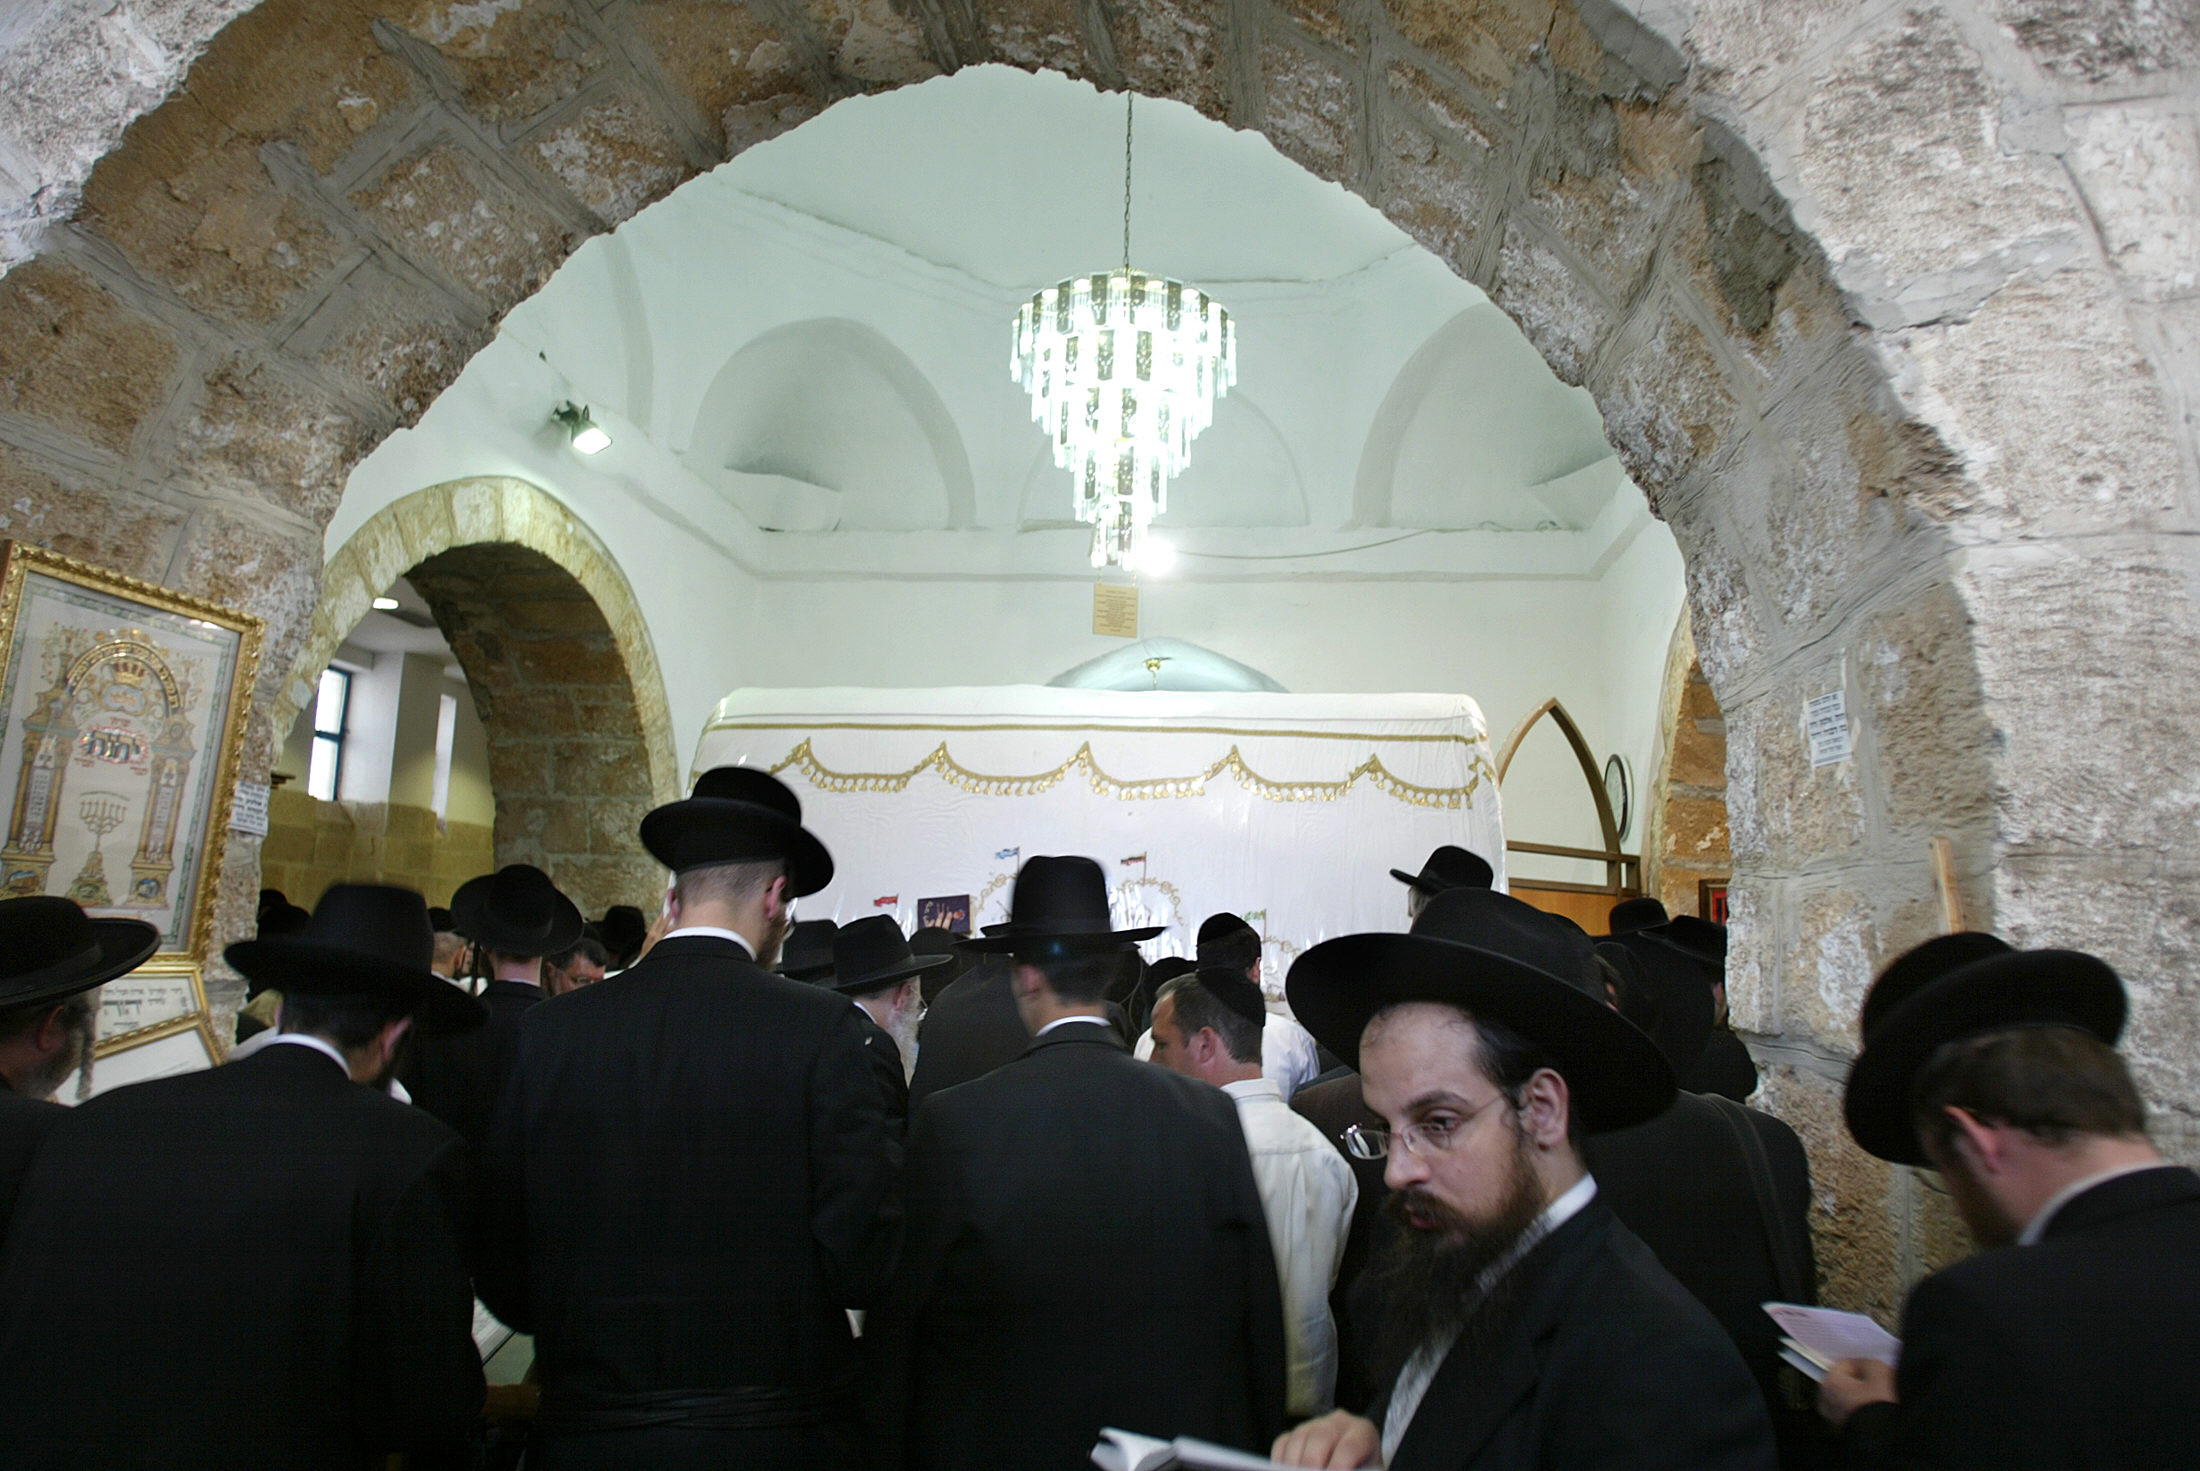 Ultra-Orthodox Jews praying at Rachel's tomb (Getty Images).